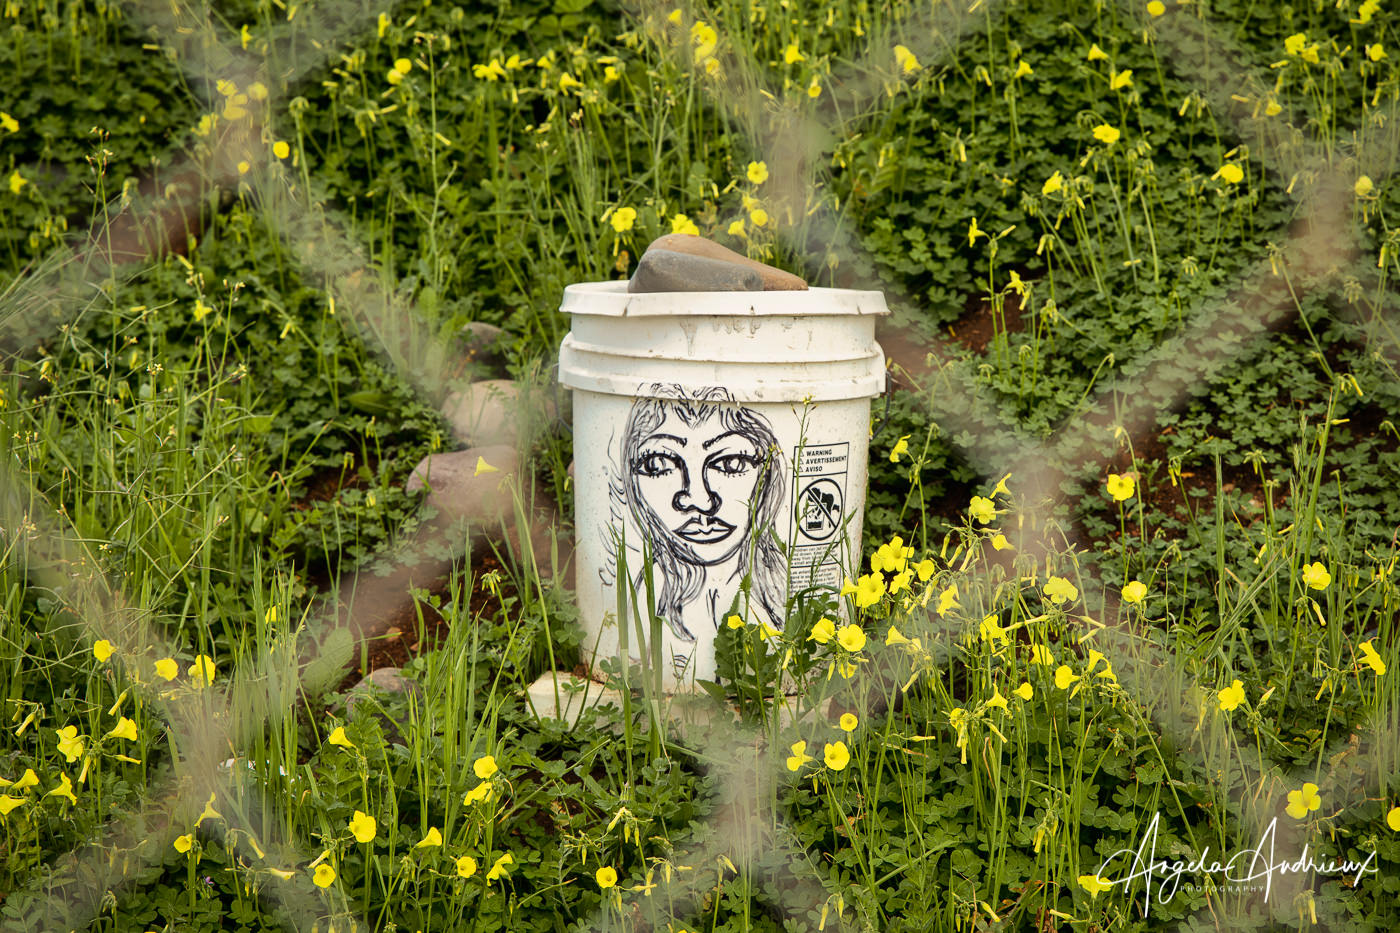 art on an abandoned bucket, captured through a chainlink fence